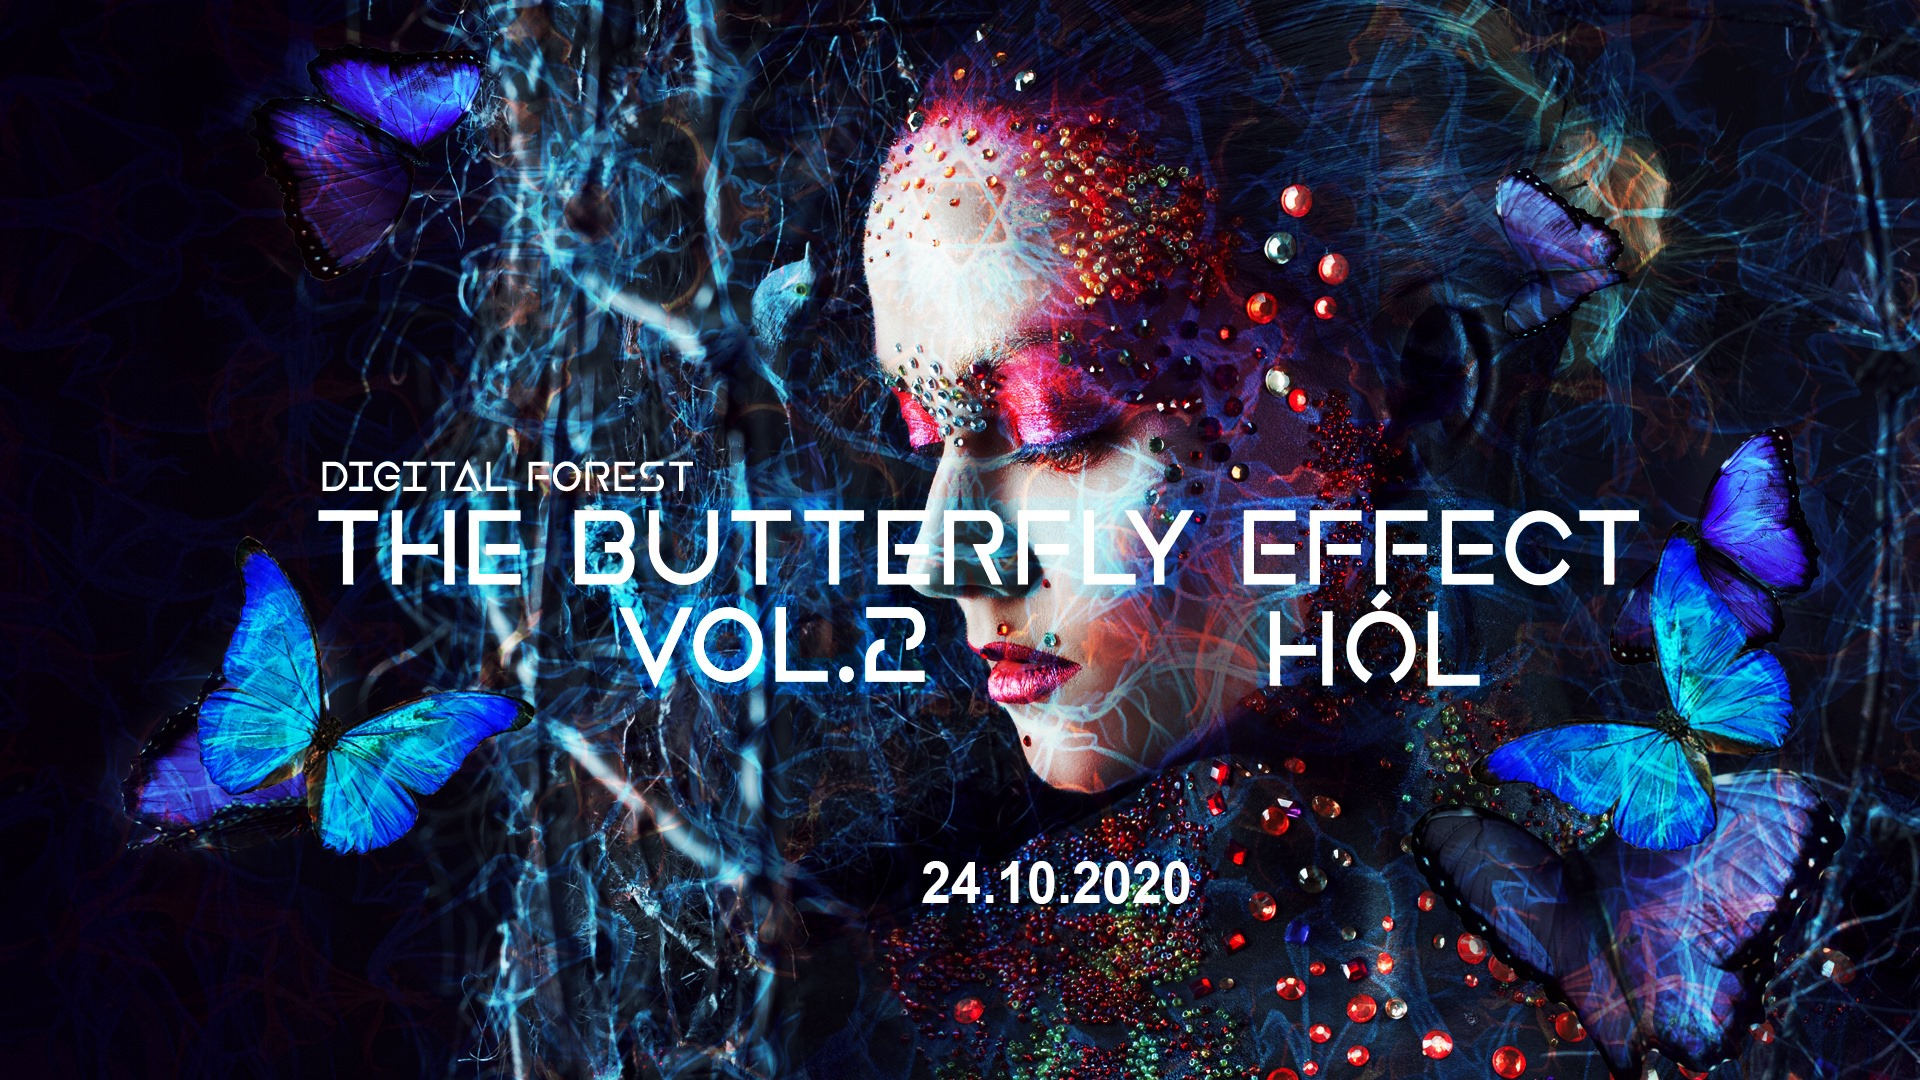 The Butterfly Effect II flyer